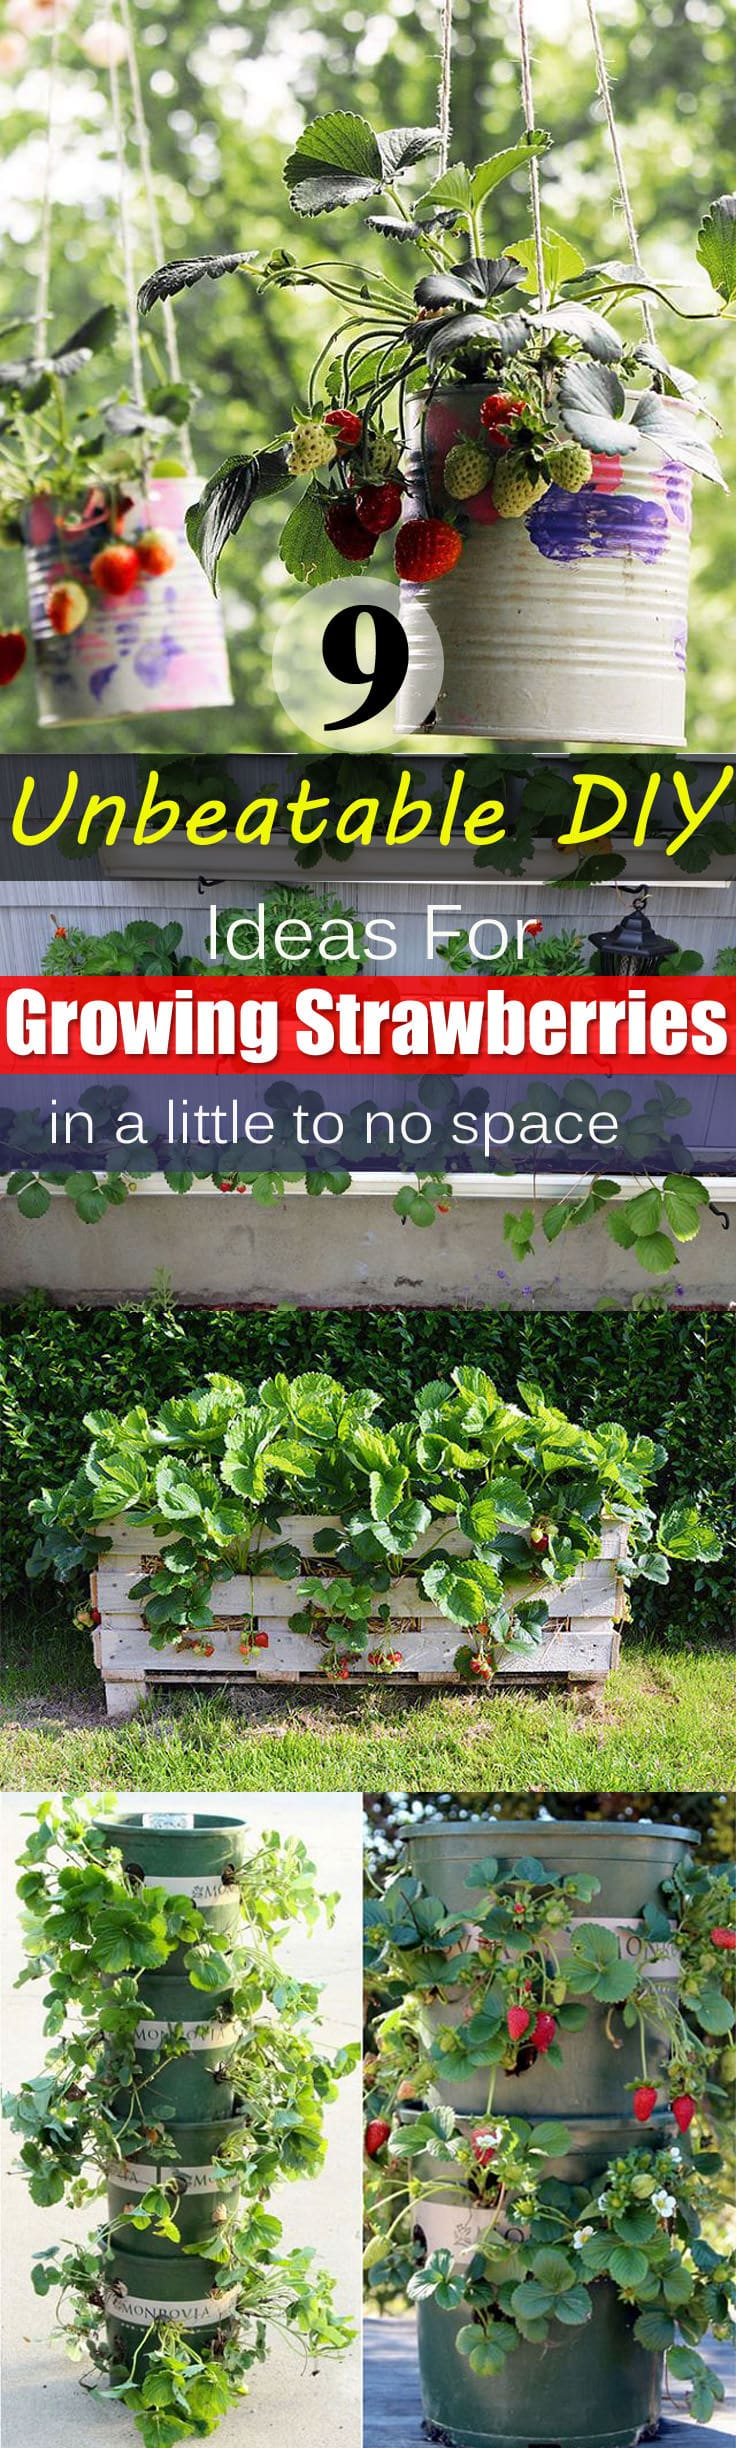 Strawberry Garden Ideas find this pin and more on strawberry garden ideas Want To Grow So Many Strawberries In So Little Space Try One Of These Vertical